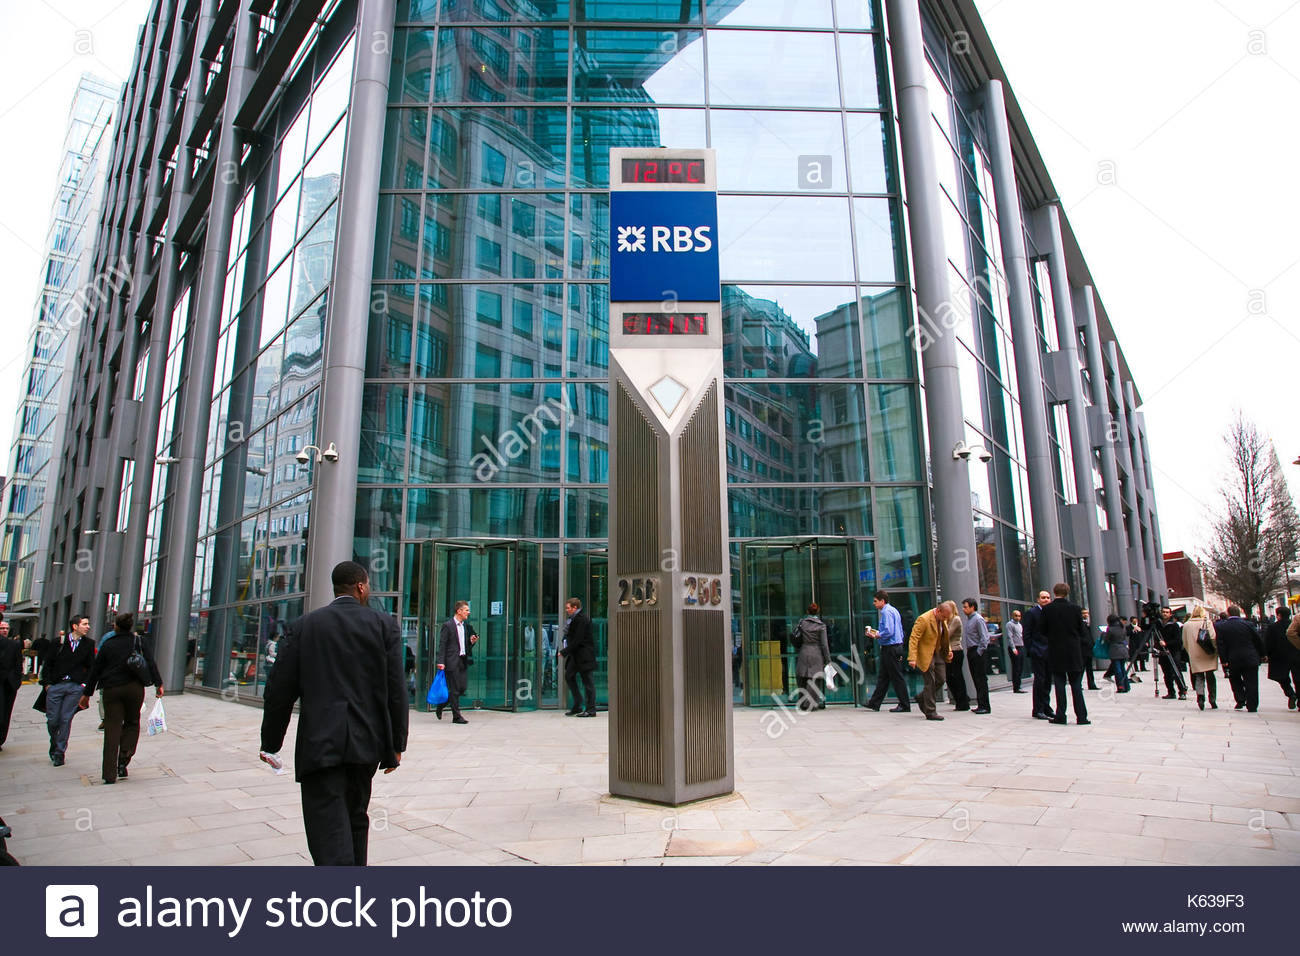 the abn amro takeover Ahead of its 2008 results announcement next month, royal bank of scotland has warned of £28 billion in writedowns and losses, much of it associated with the 2007 takeover of parts of the dutch bank abn amro.